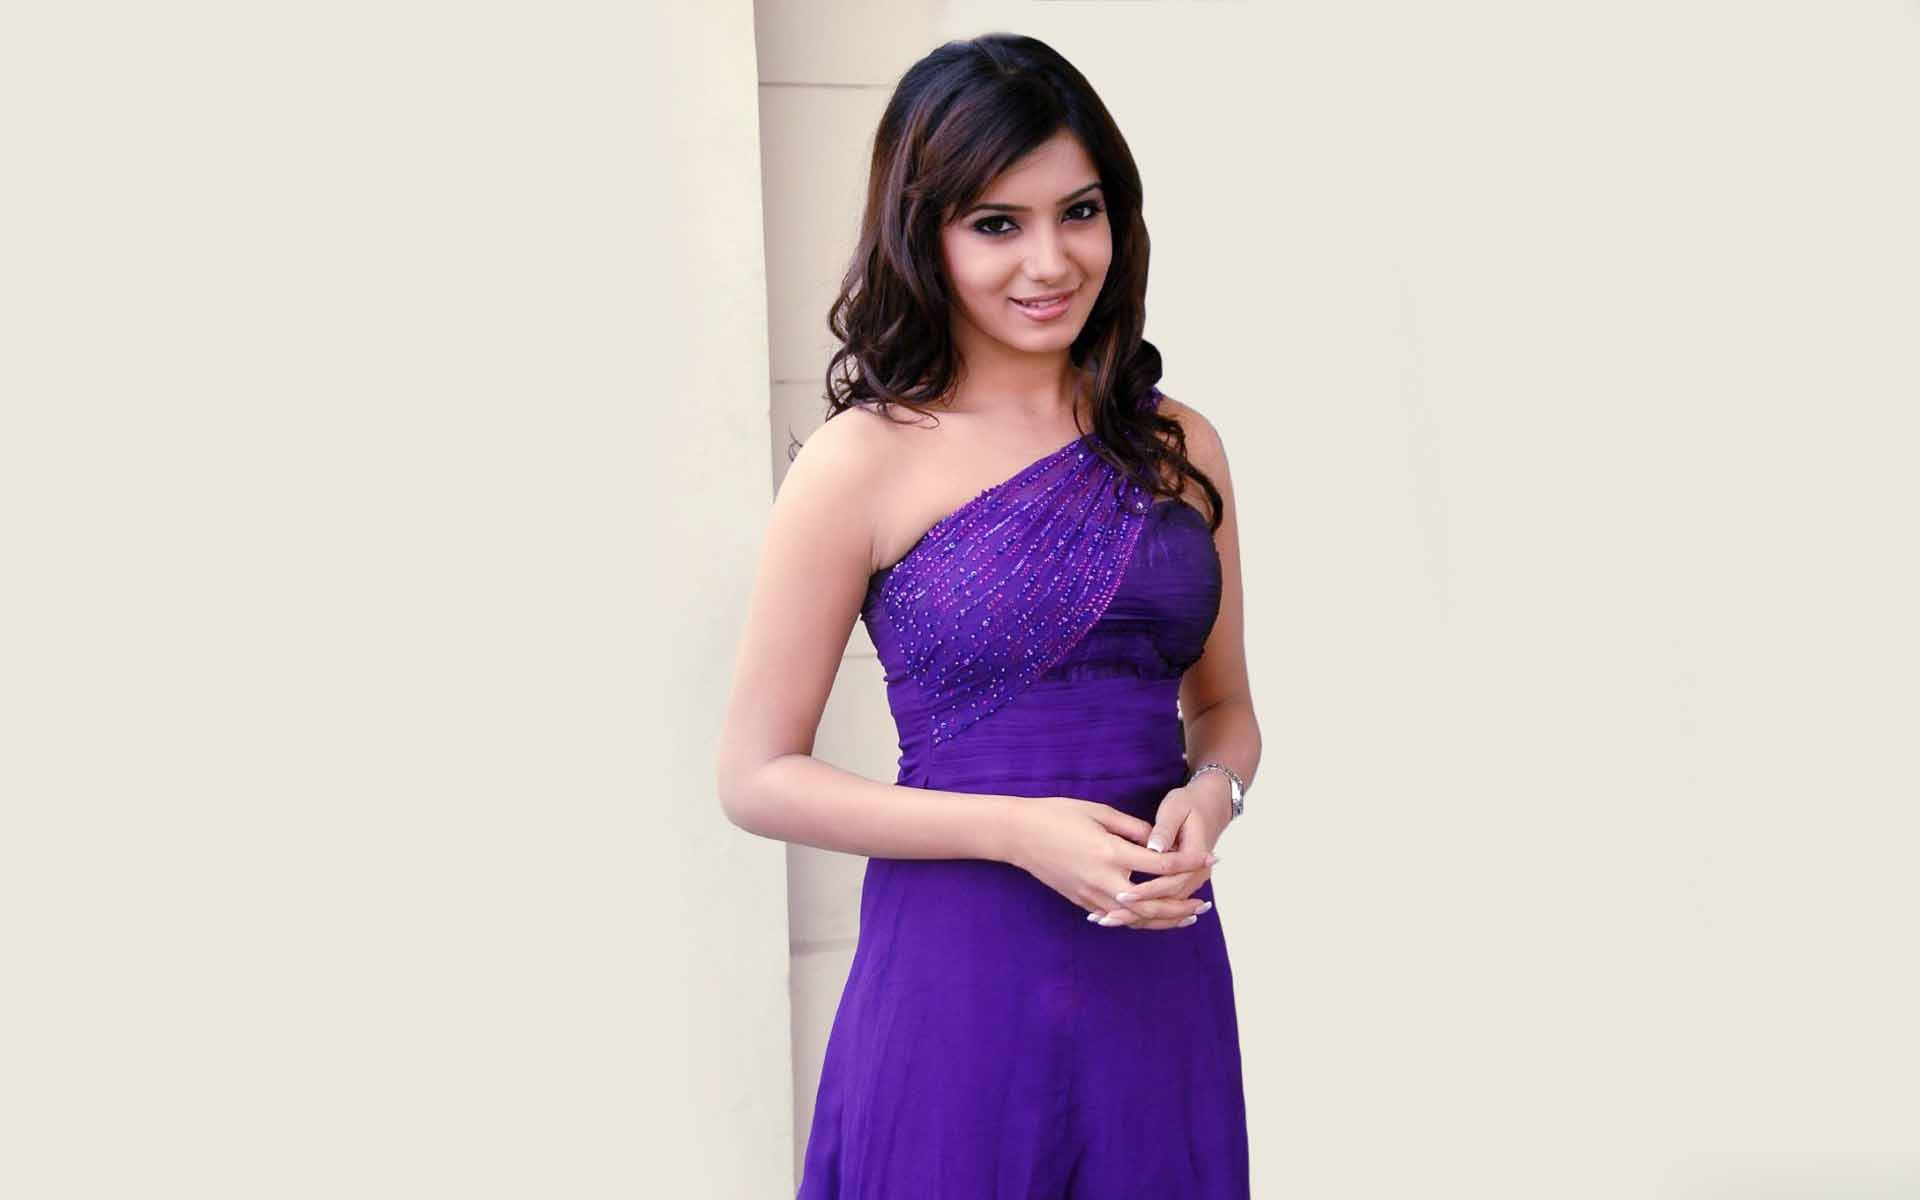 samantha ruth prabhu hd wallpapers - sf wallpaper